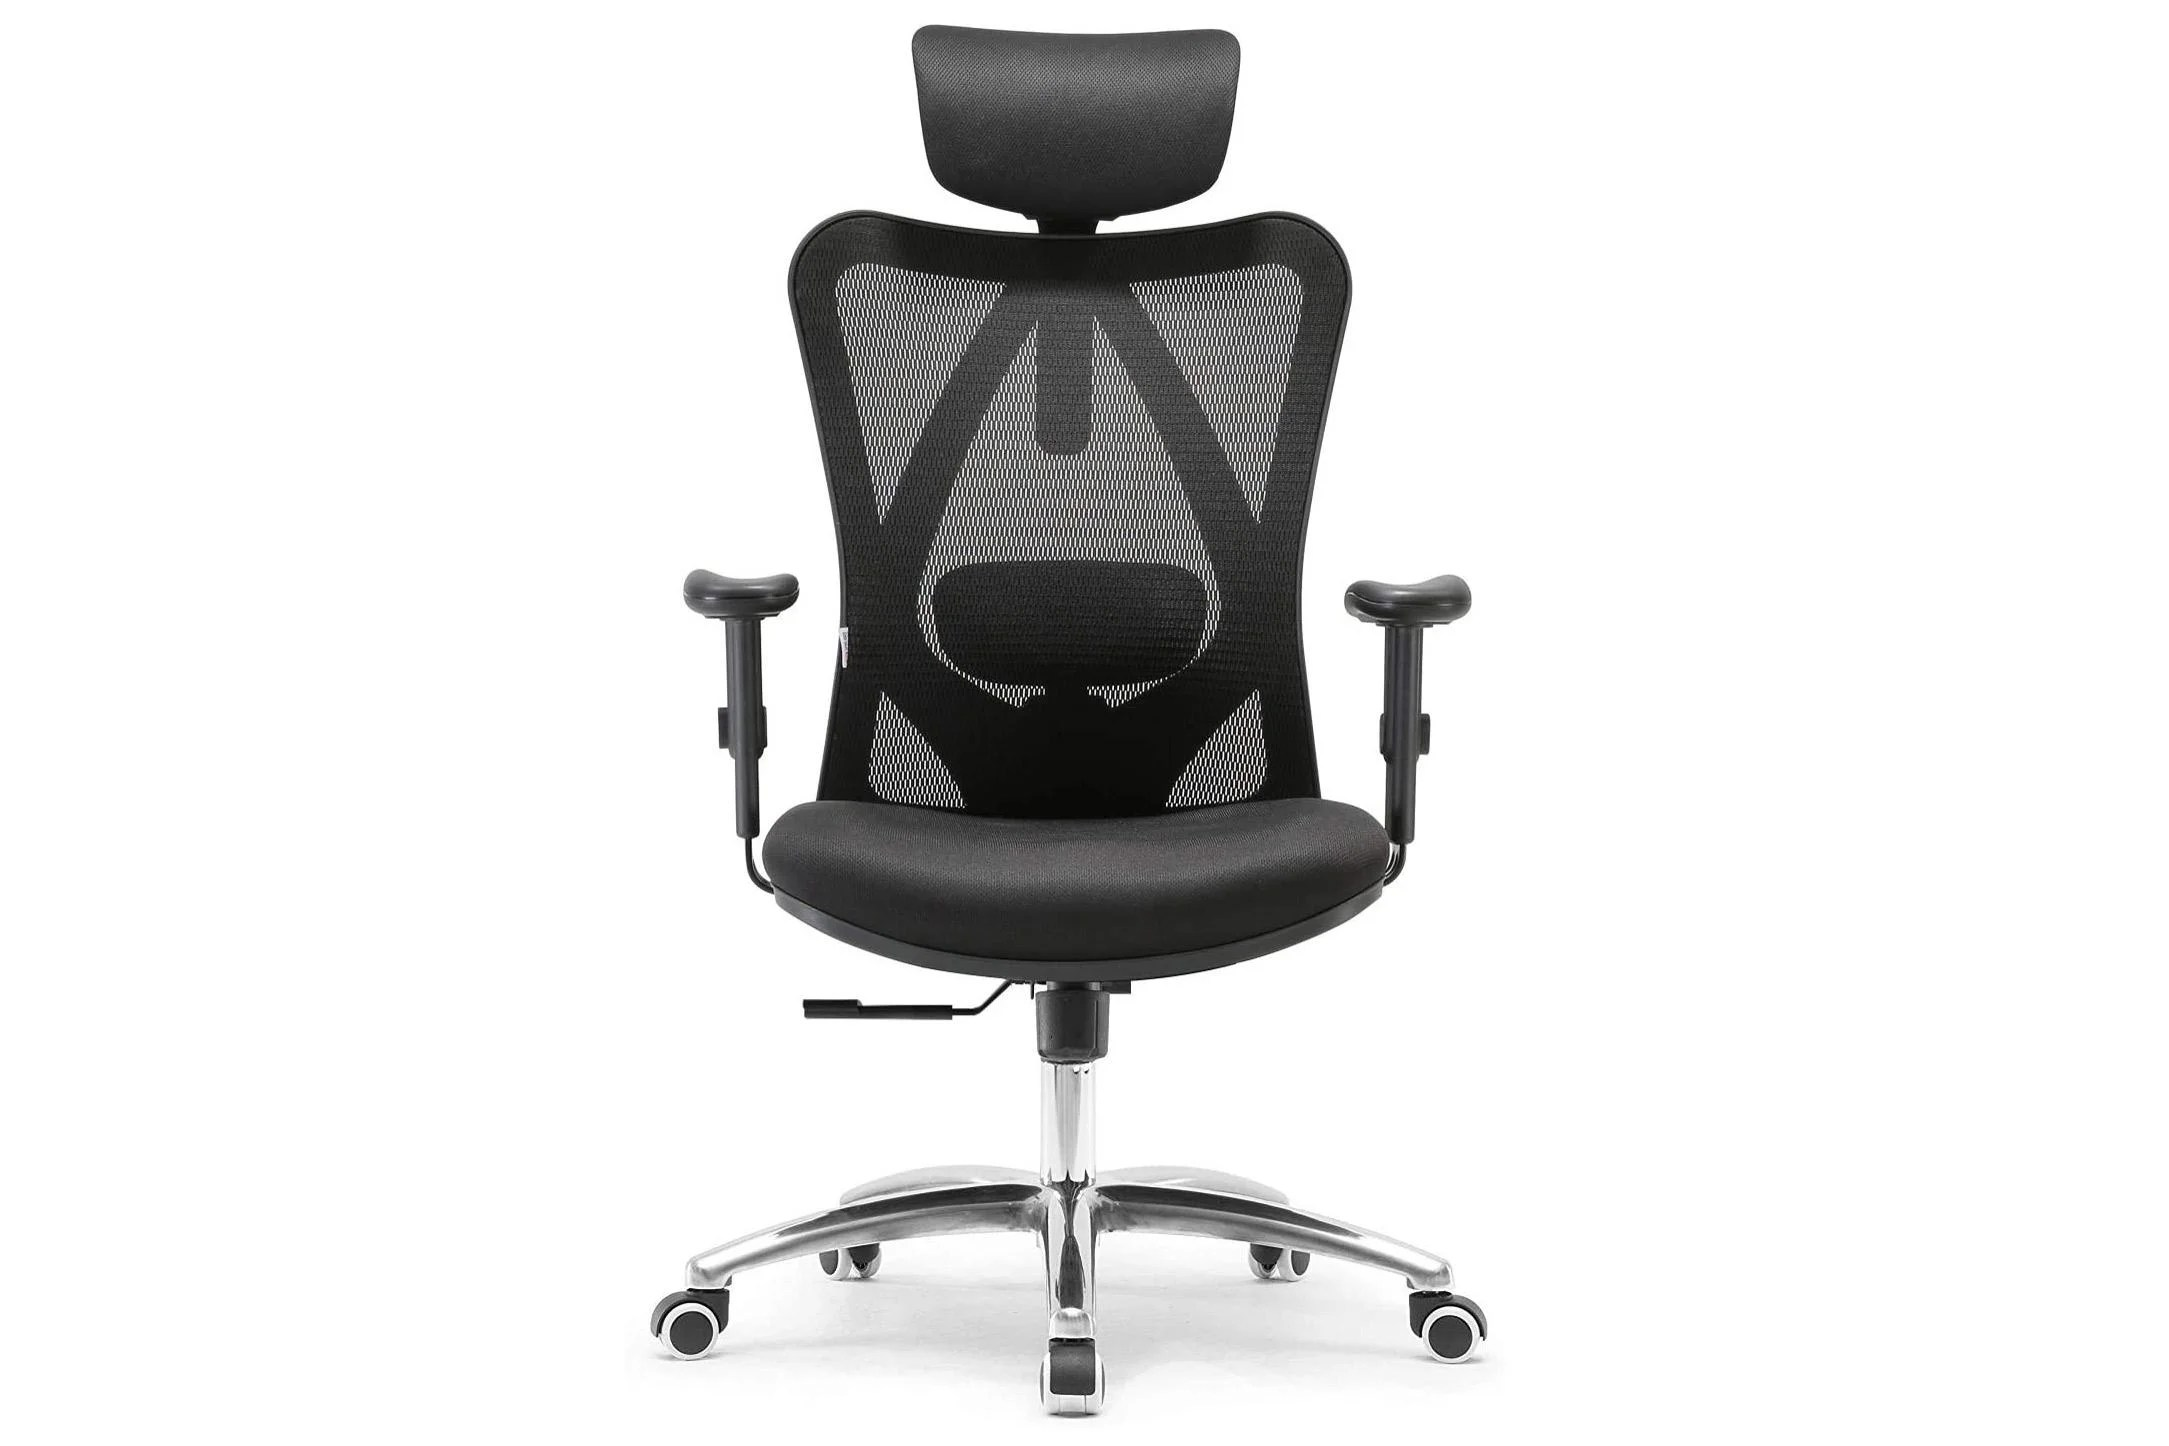 Best Ergonomic Office Chairs For Home From Budget To Professional London Evening Standard Evening Standard